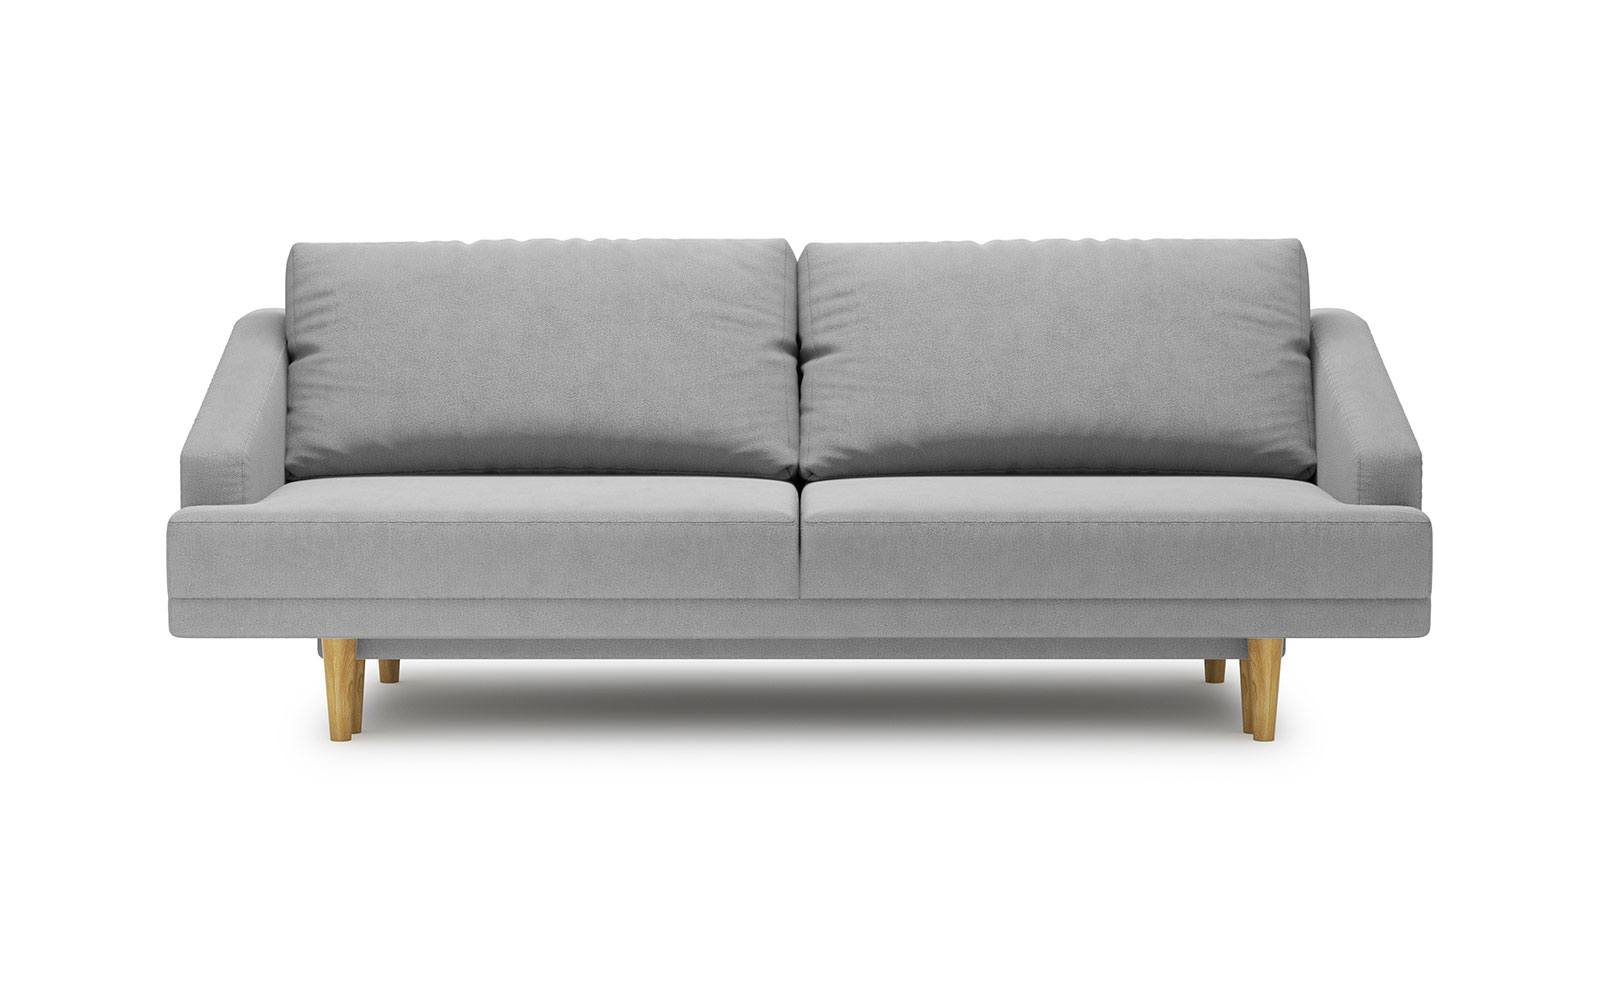 Pawia Sofa - soft touch silver